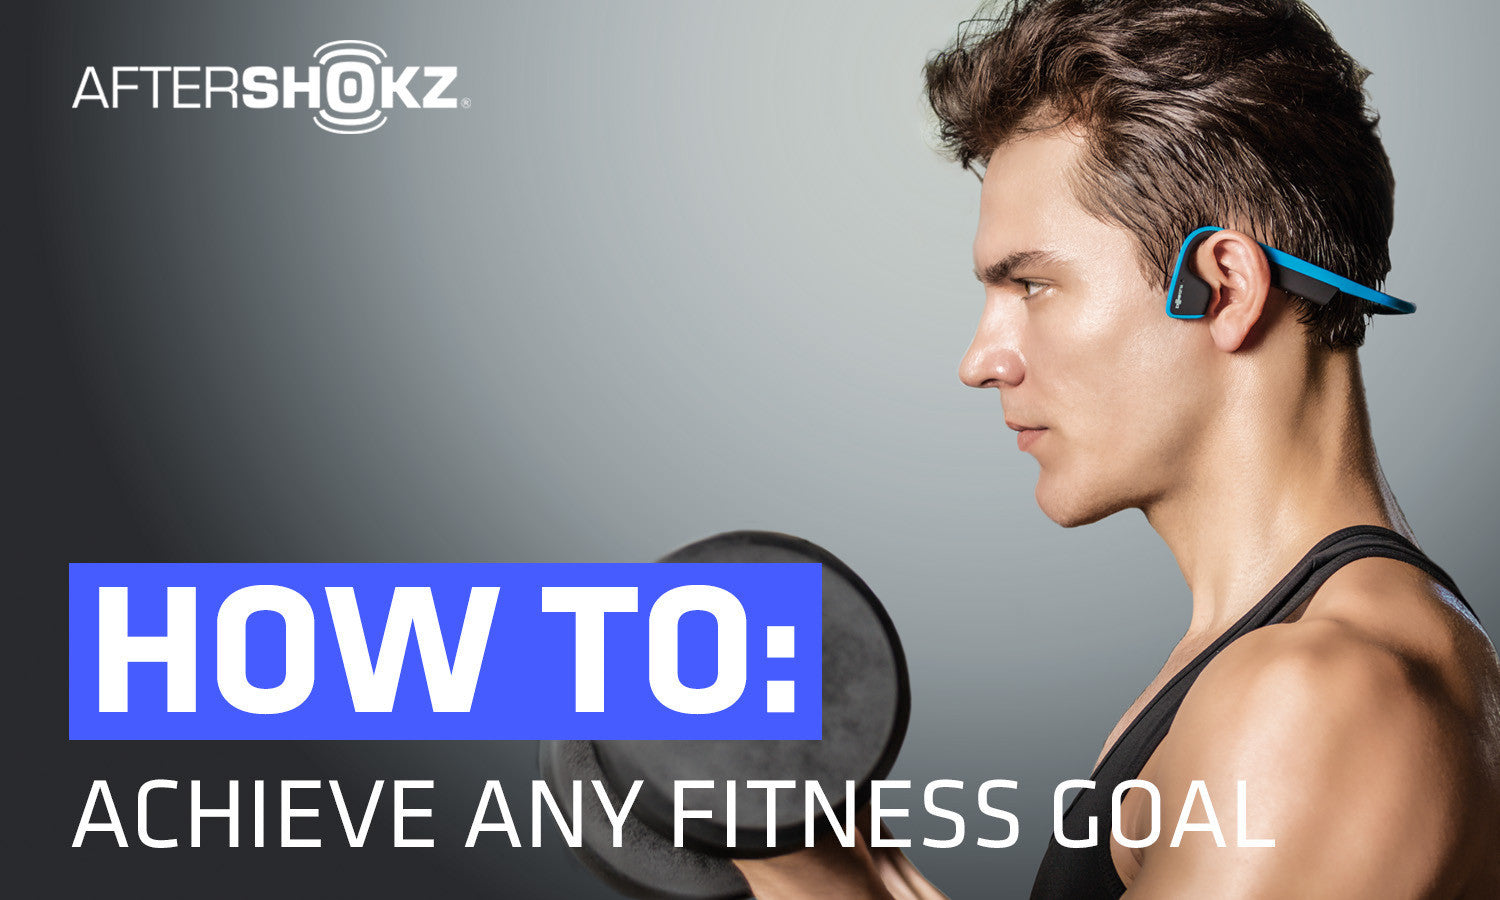 How To: Achieve Any Fitness Goal